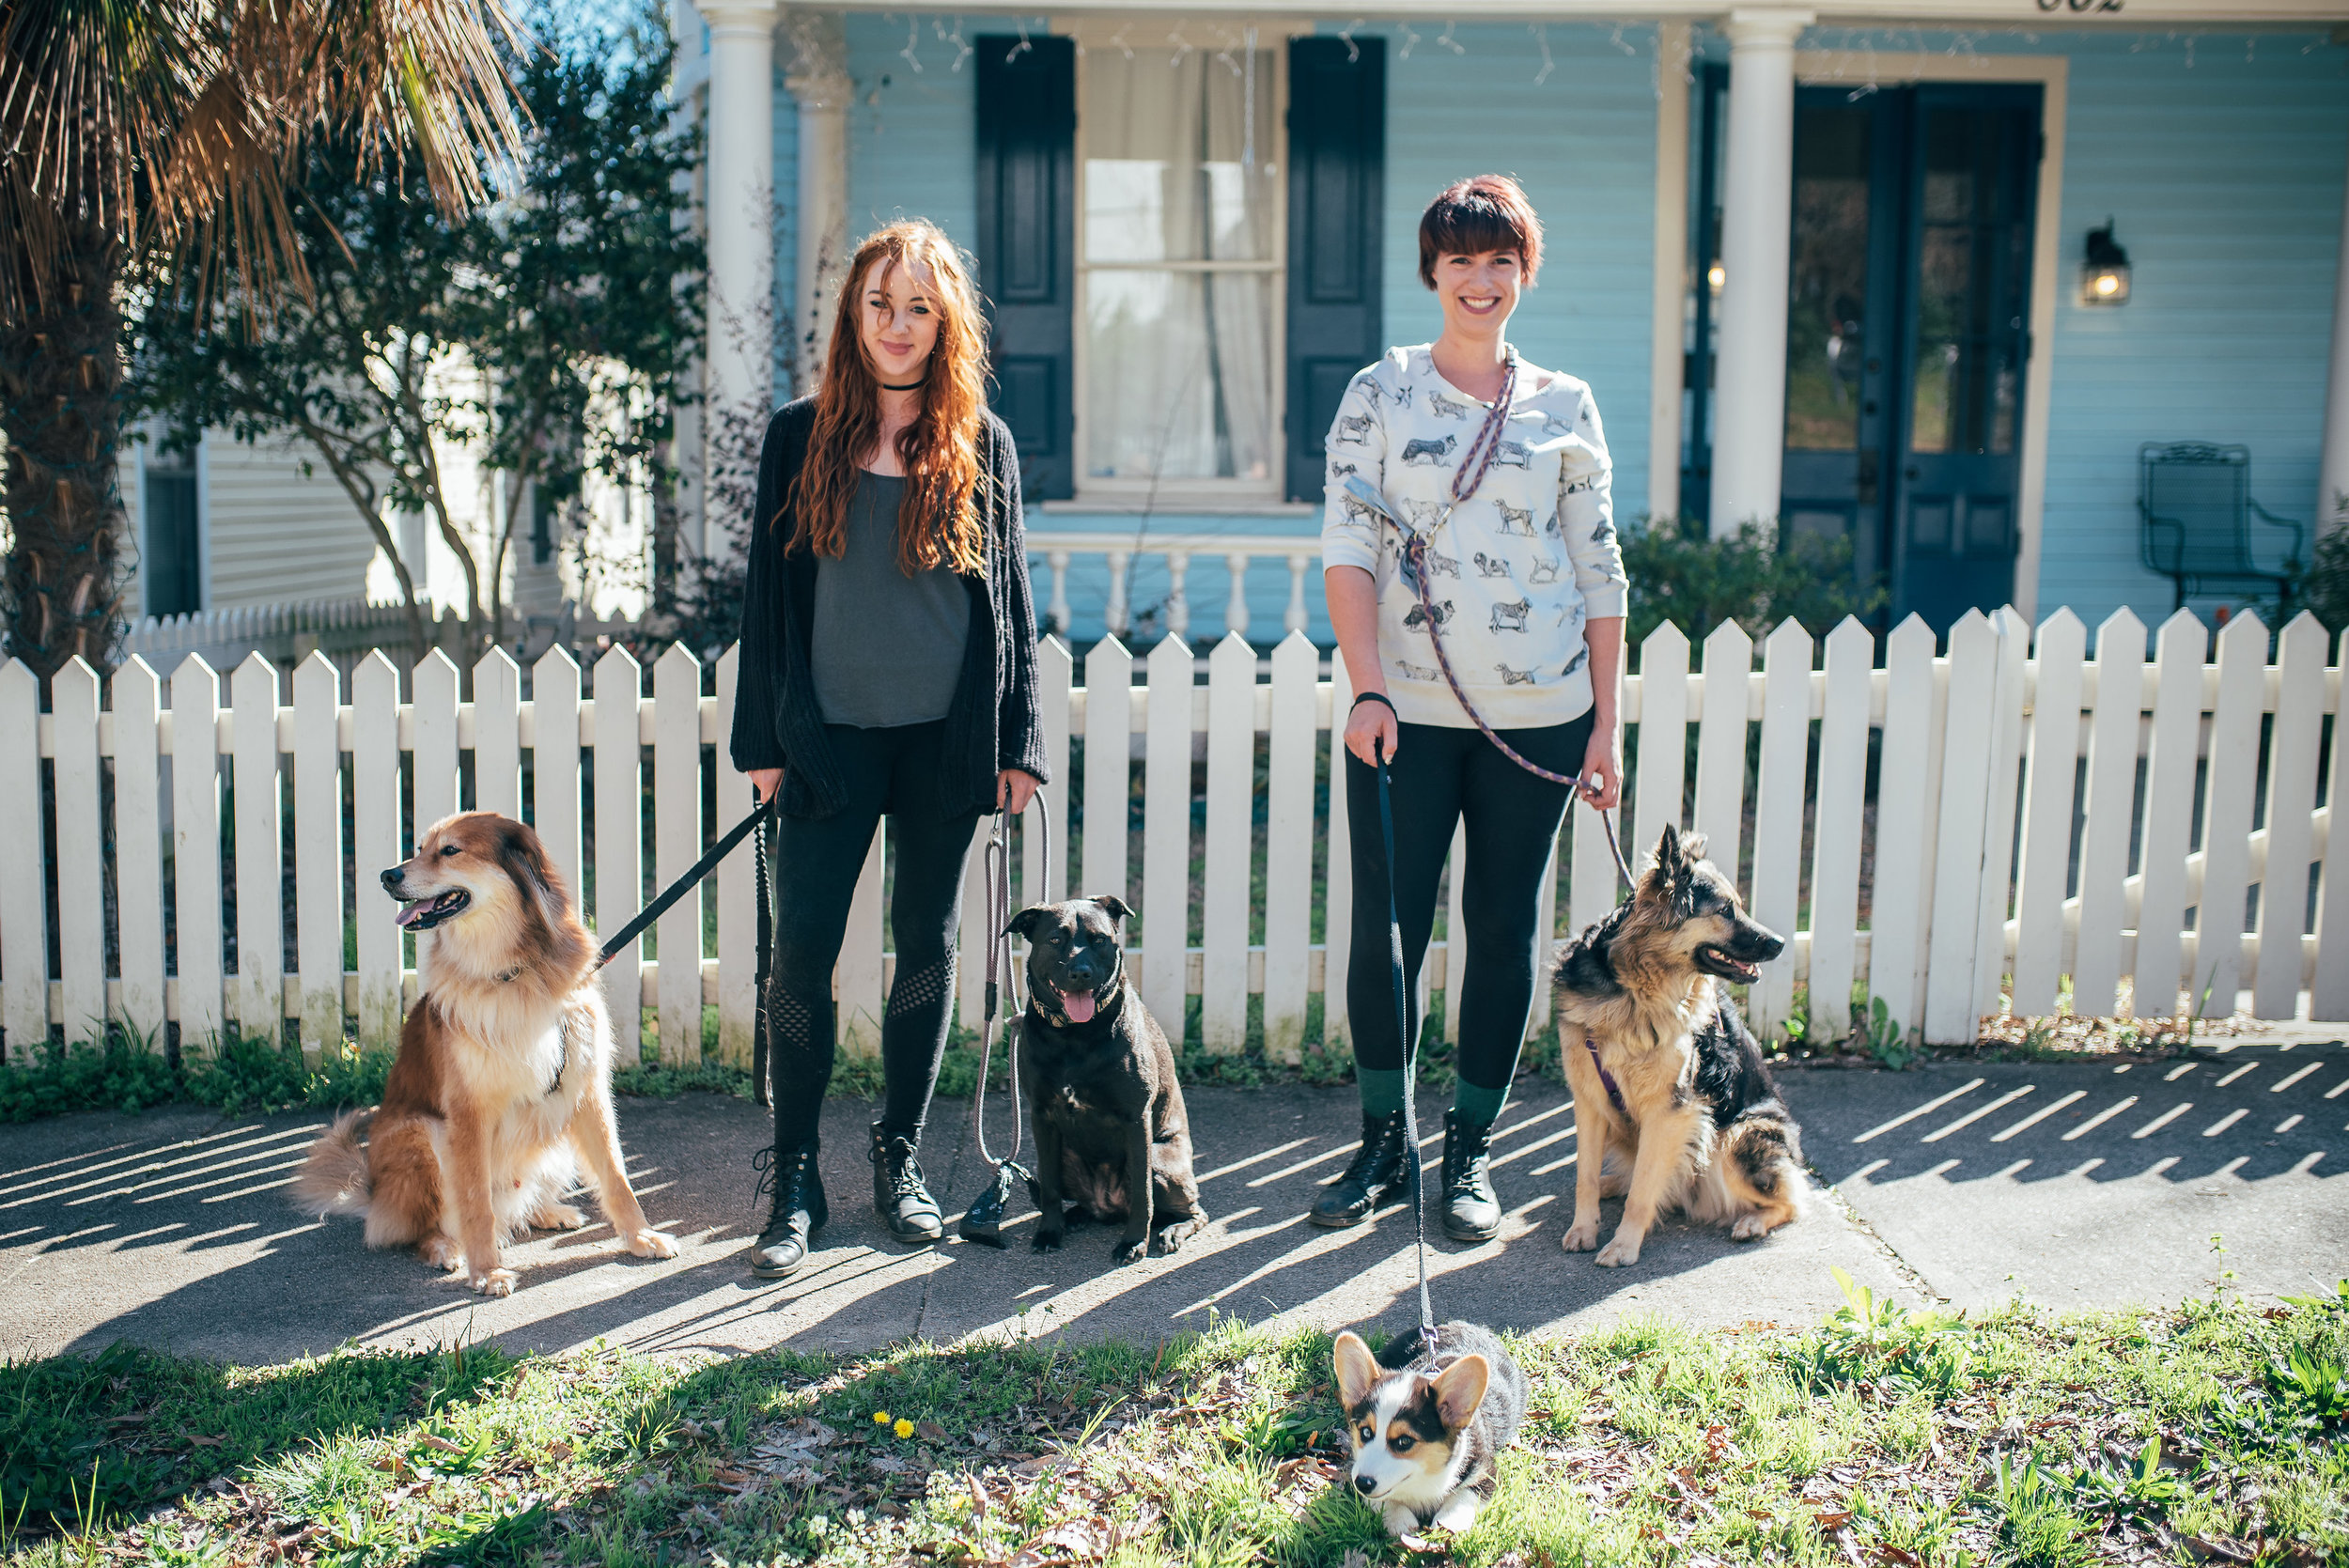 raleigh dogwalkers - raleigh dogwalking services - north carolina creative community